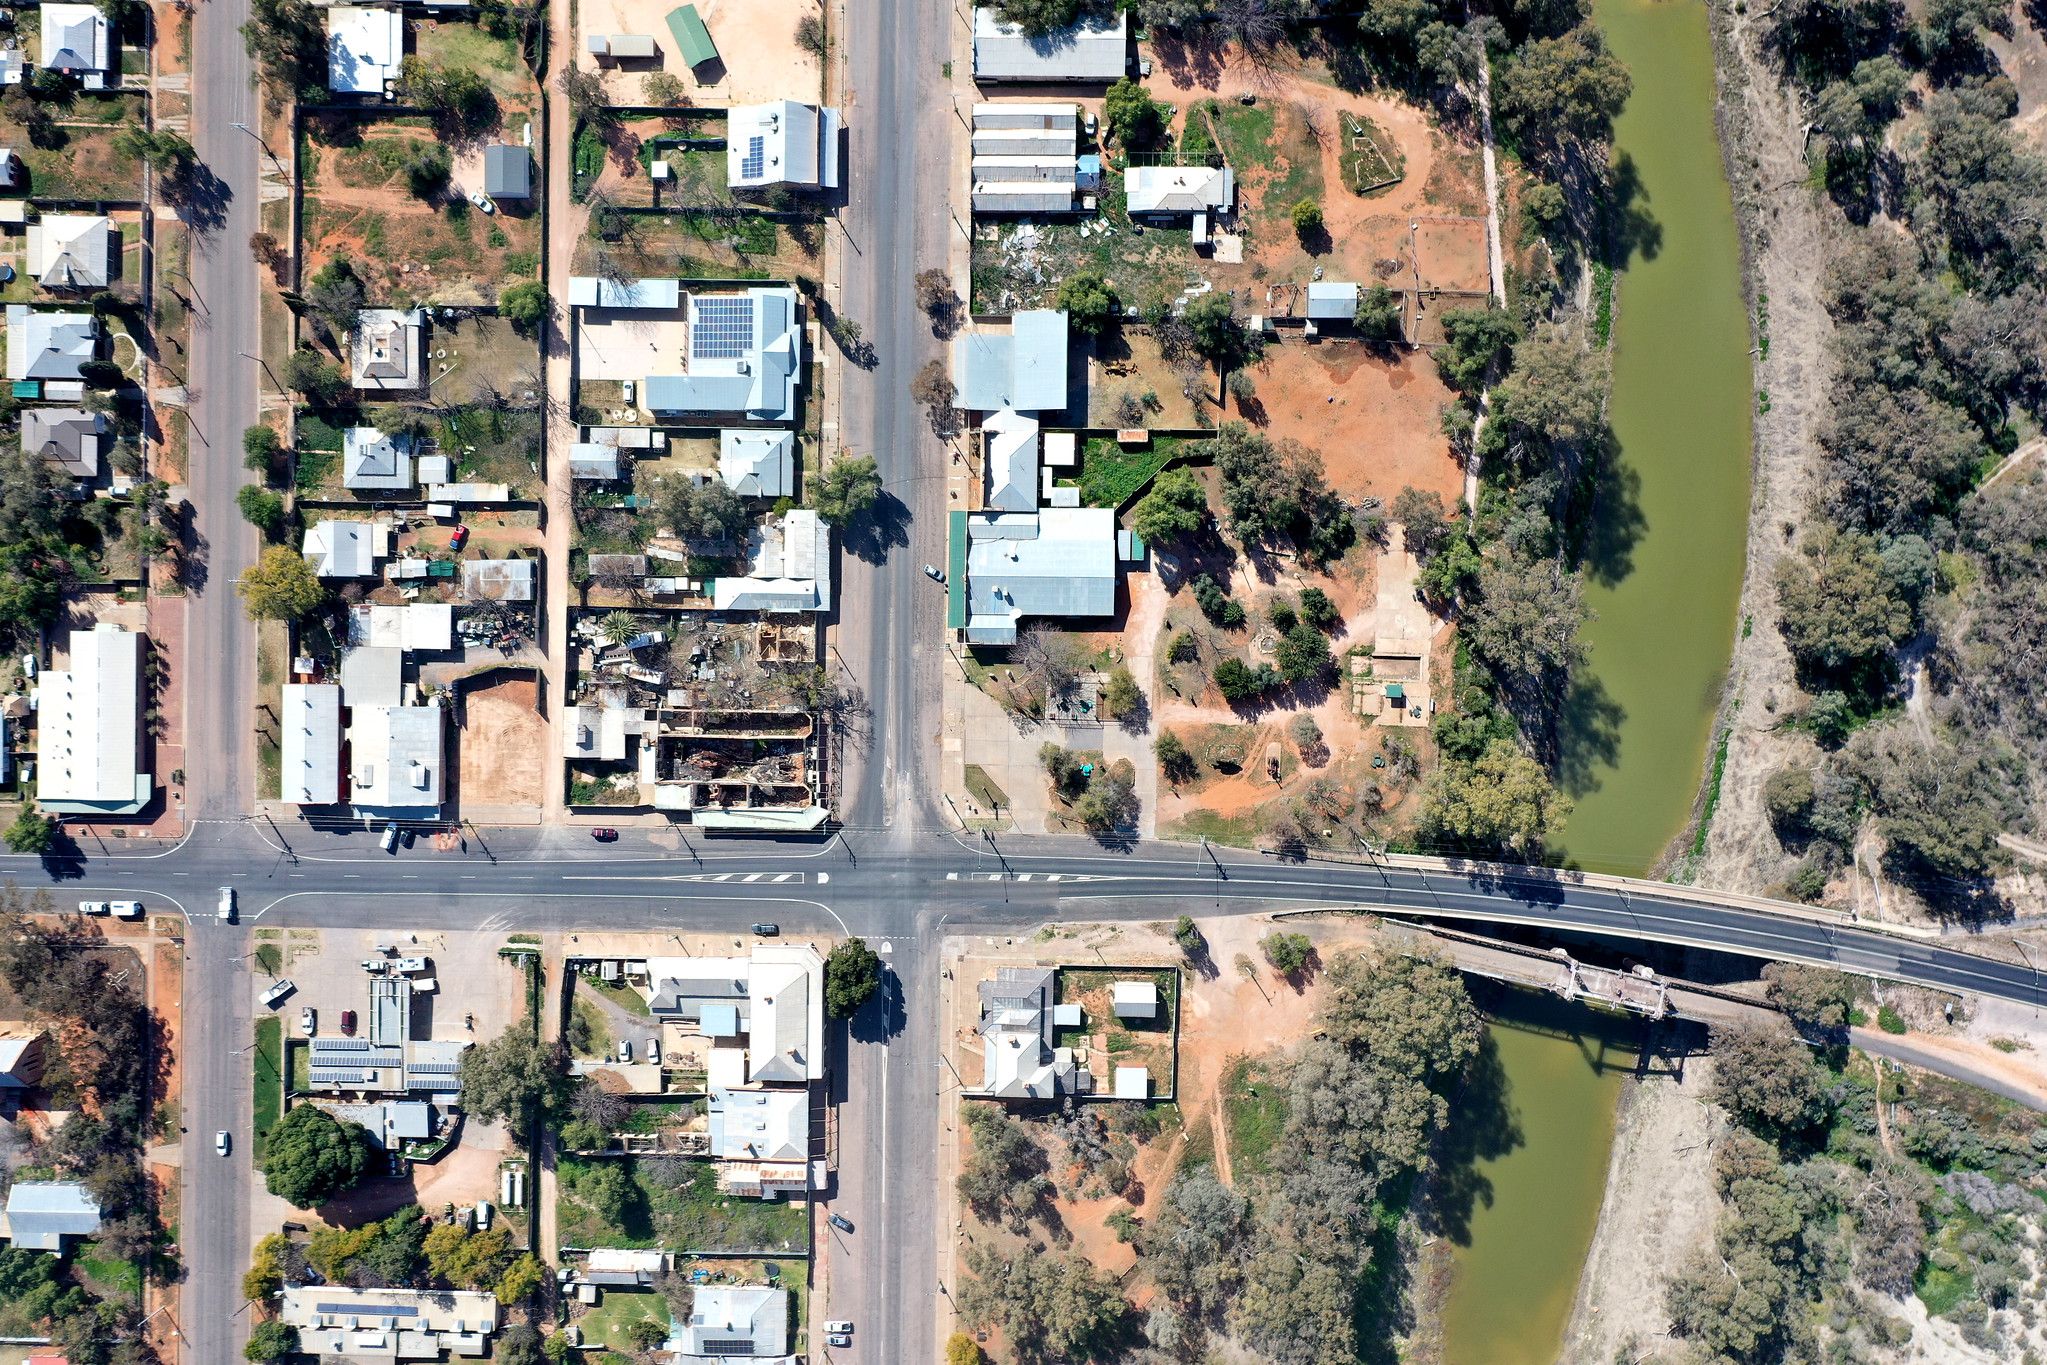 An aerial photograph of Wilcannia looking directly down on the town. Part of the town centre's street grid is visible, as well as the road bridge over the Darling River.